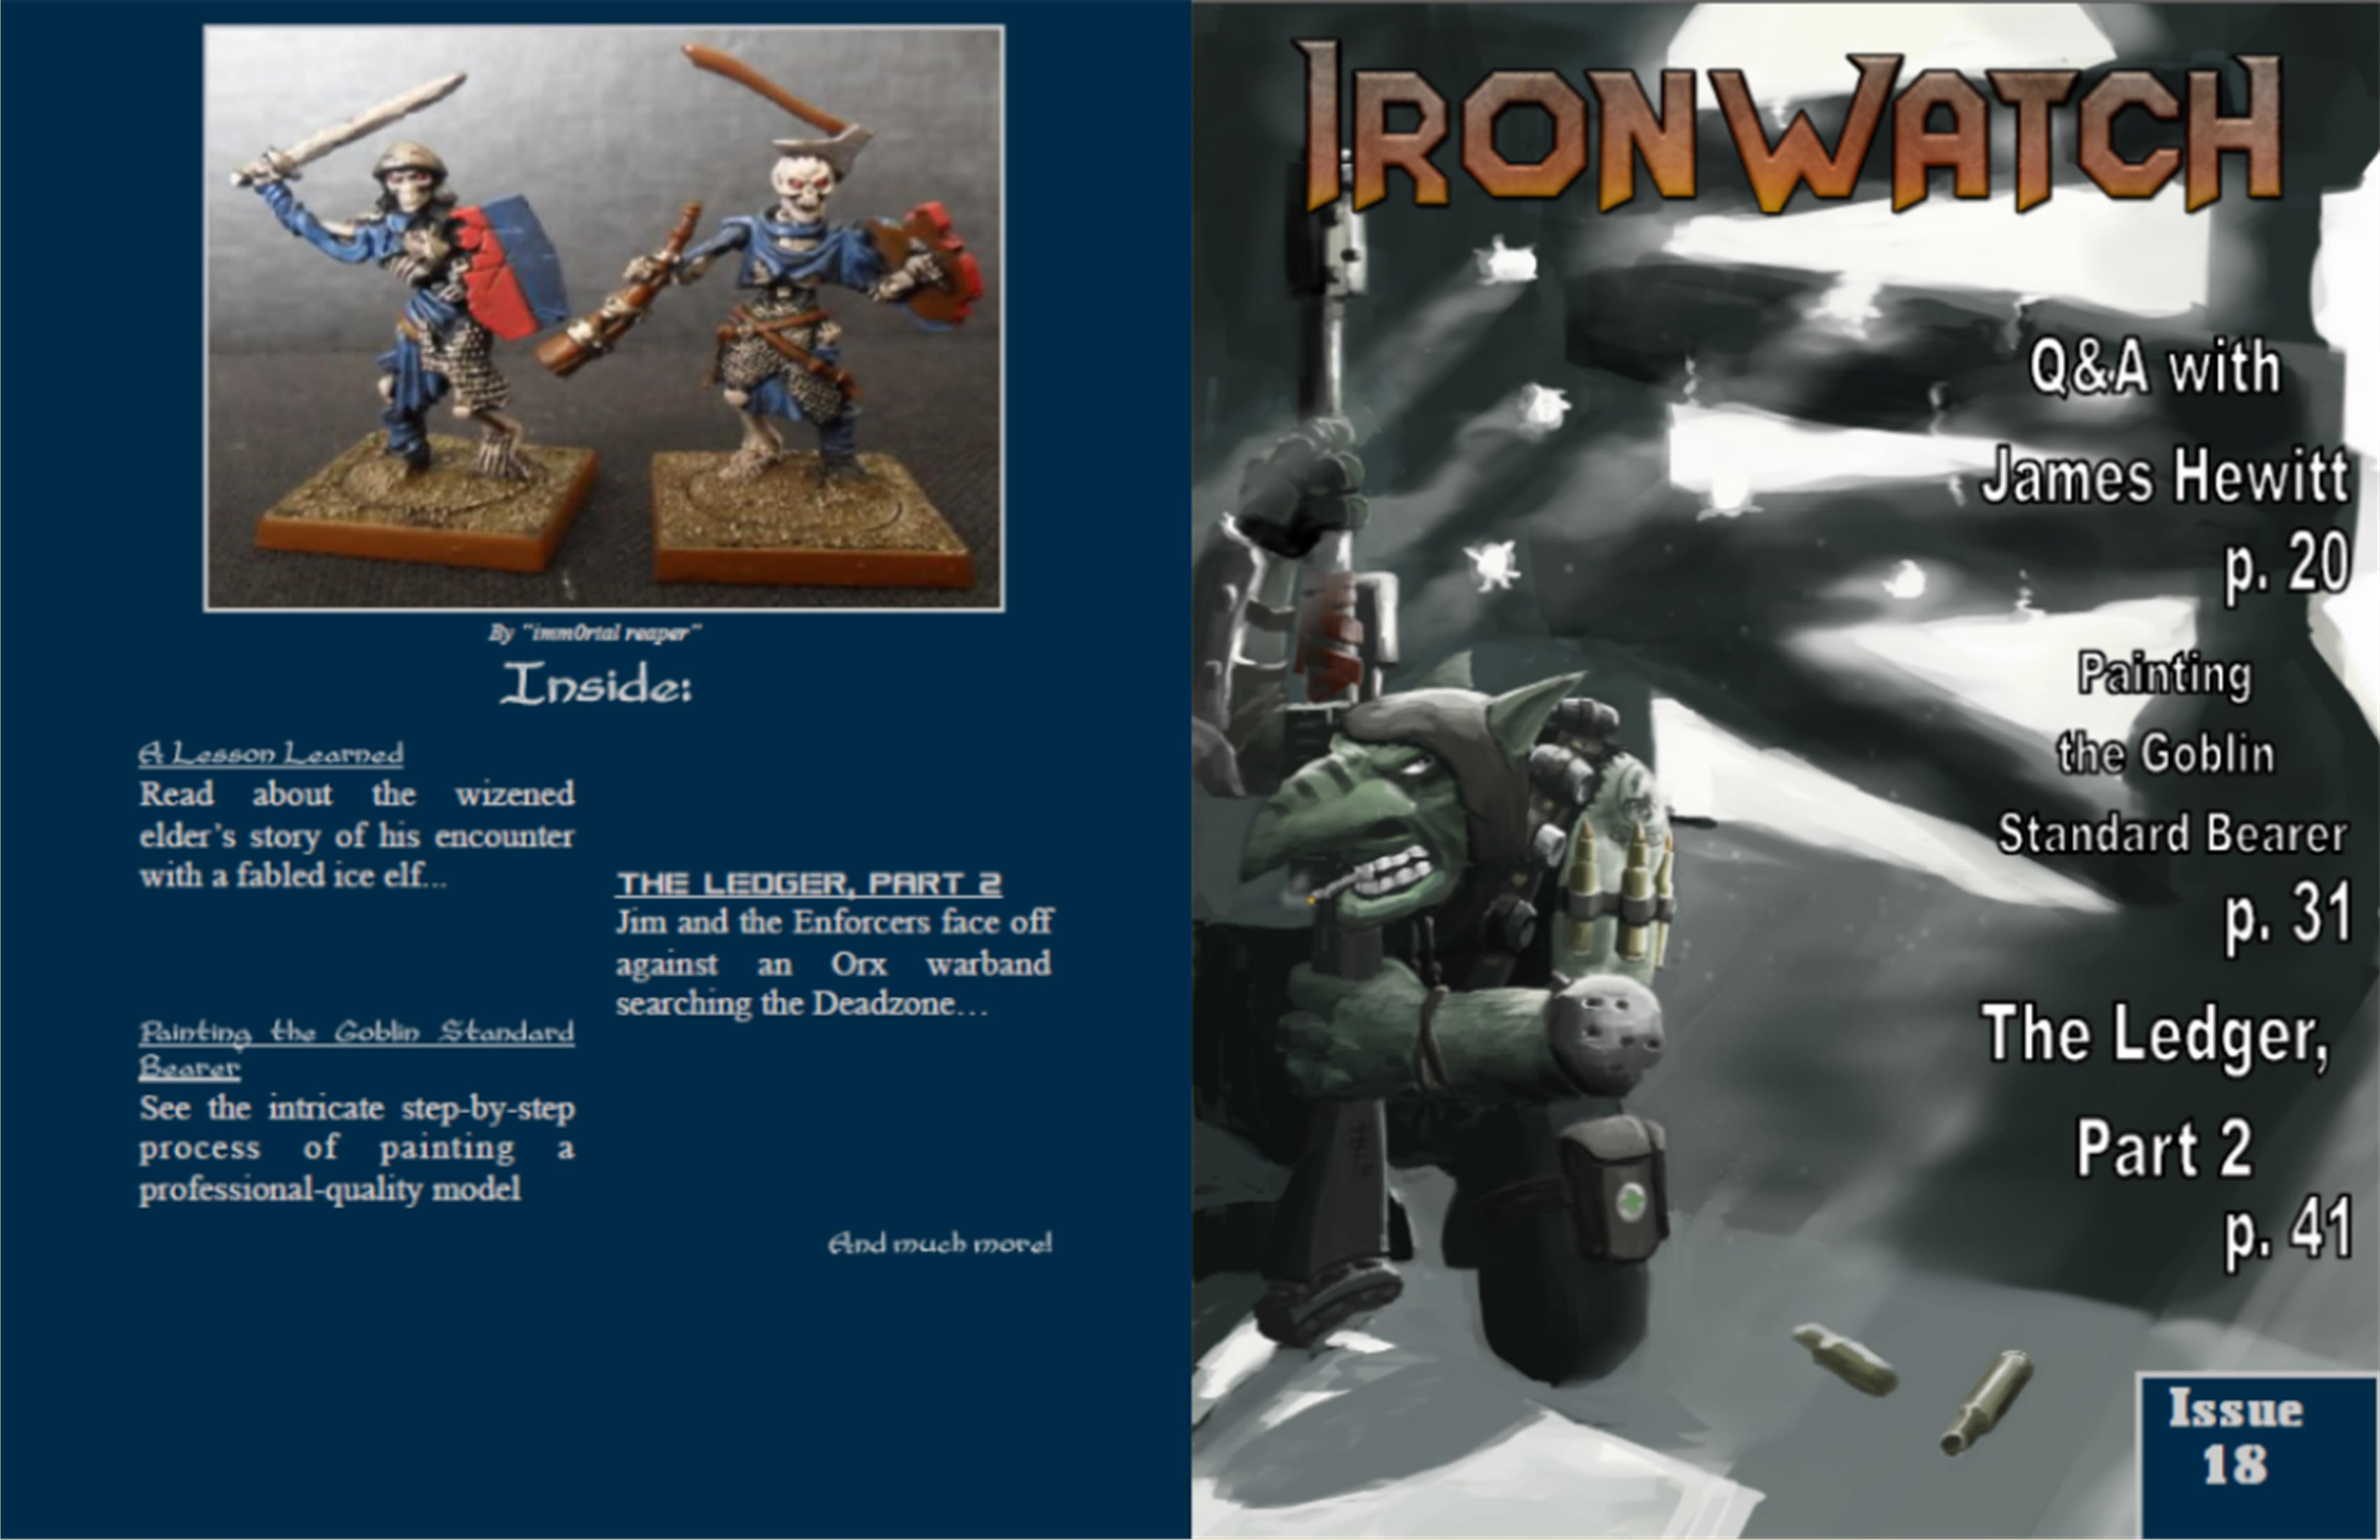 Ironwatch Issue 18 cover image